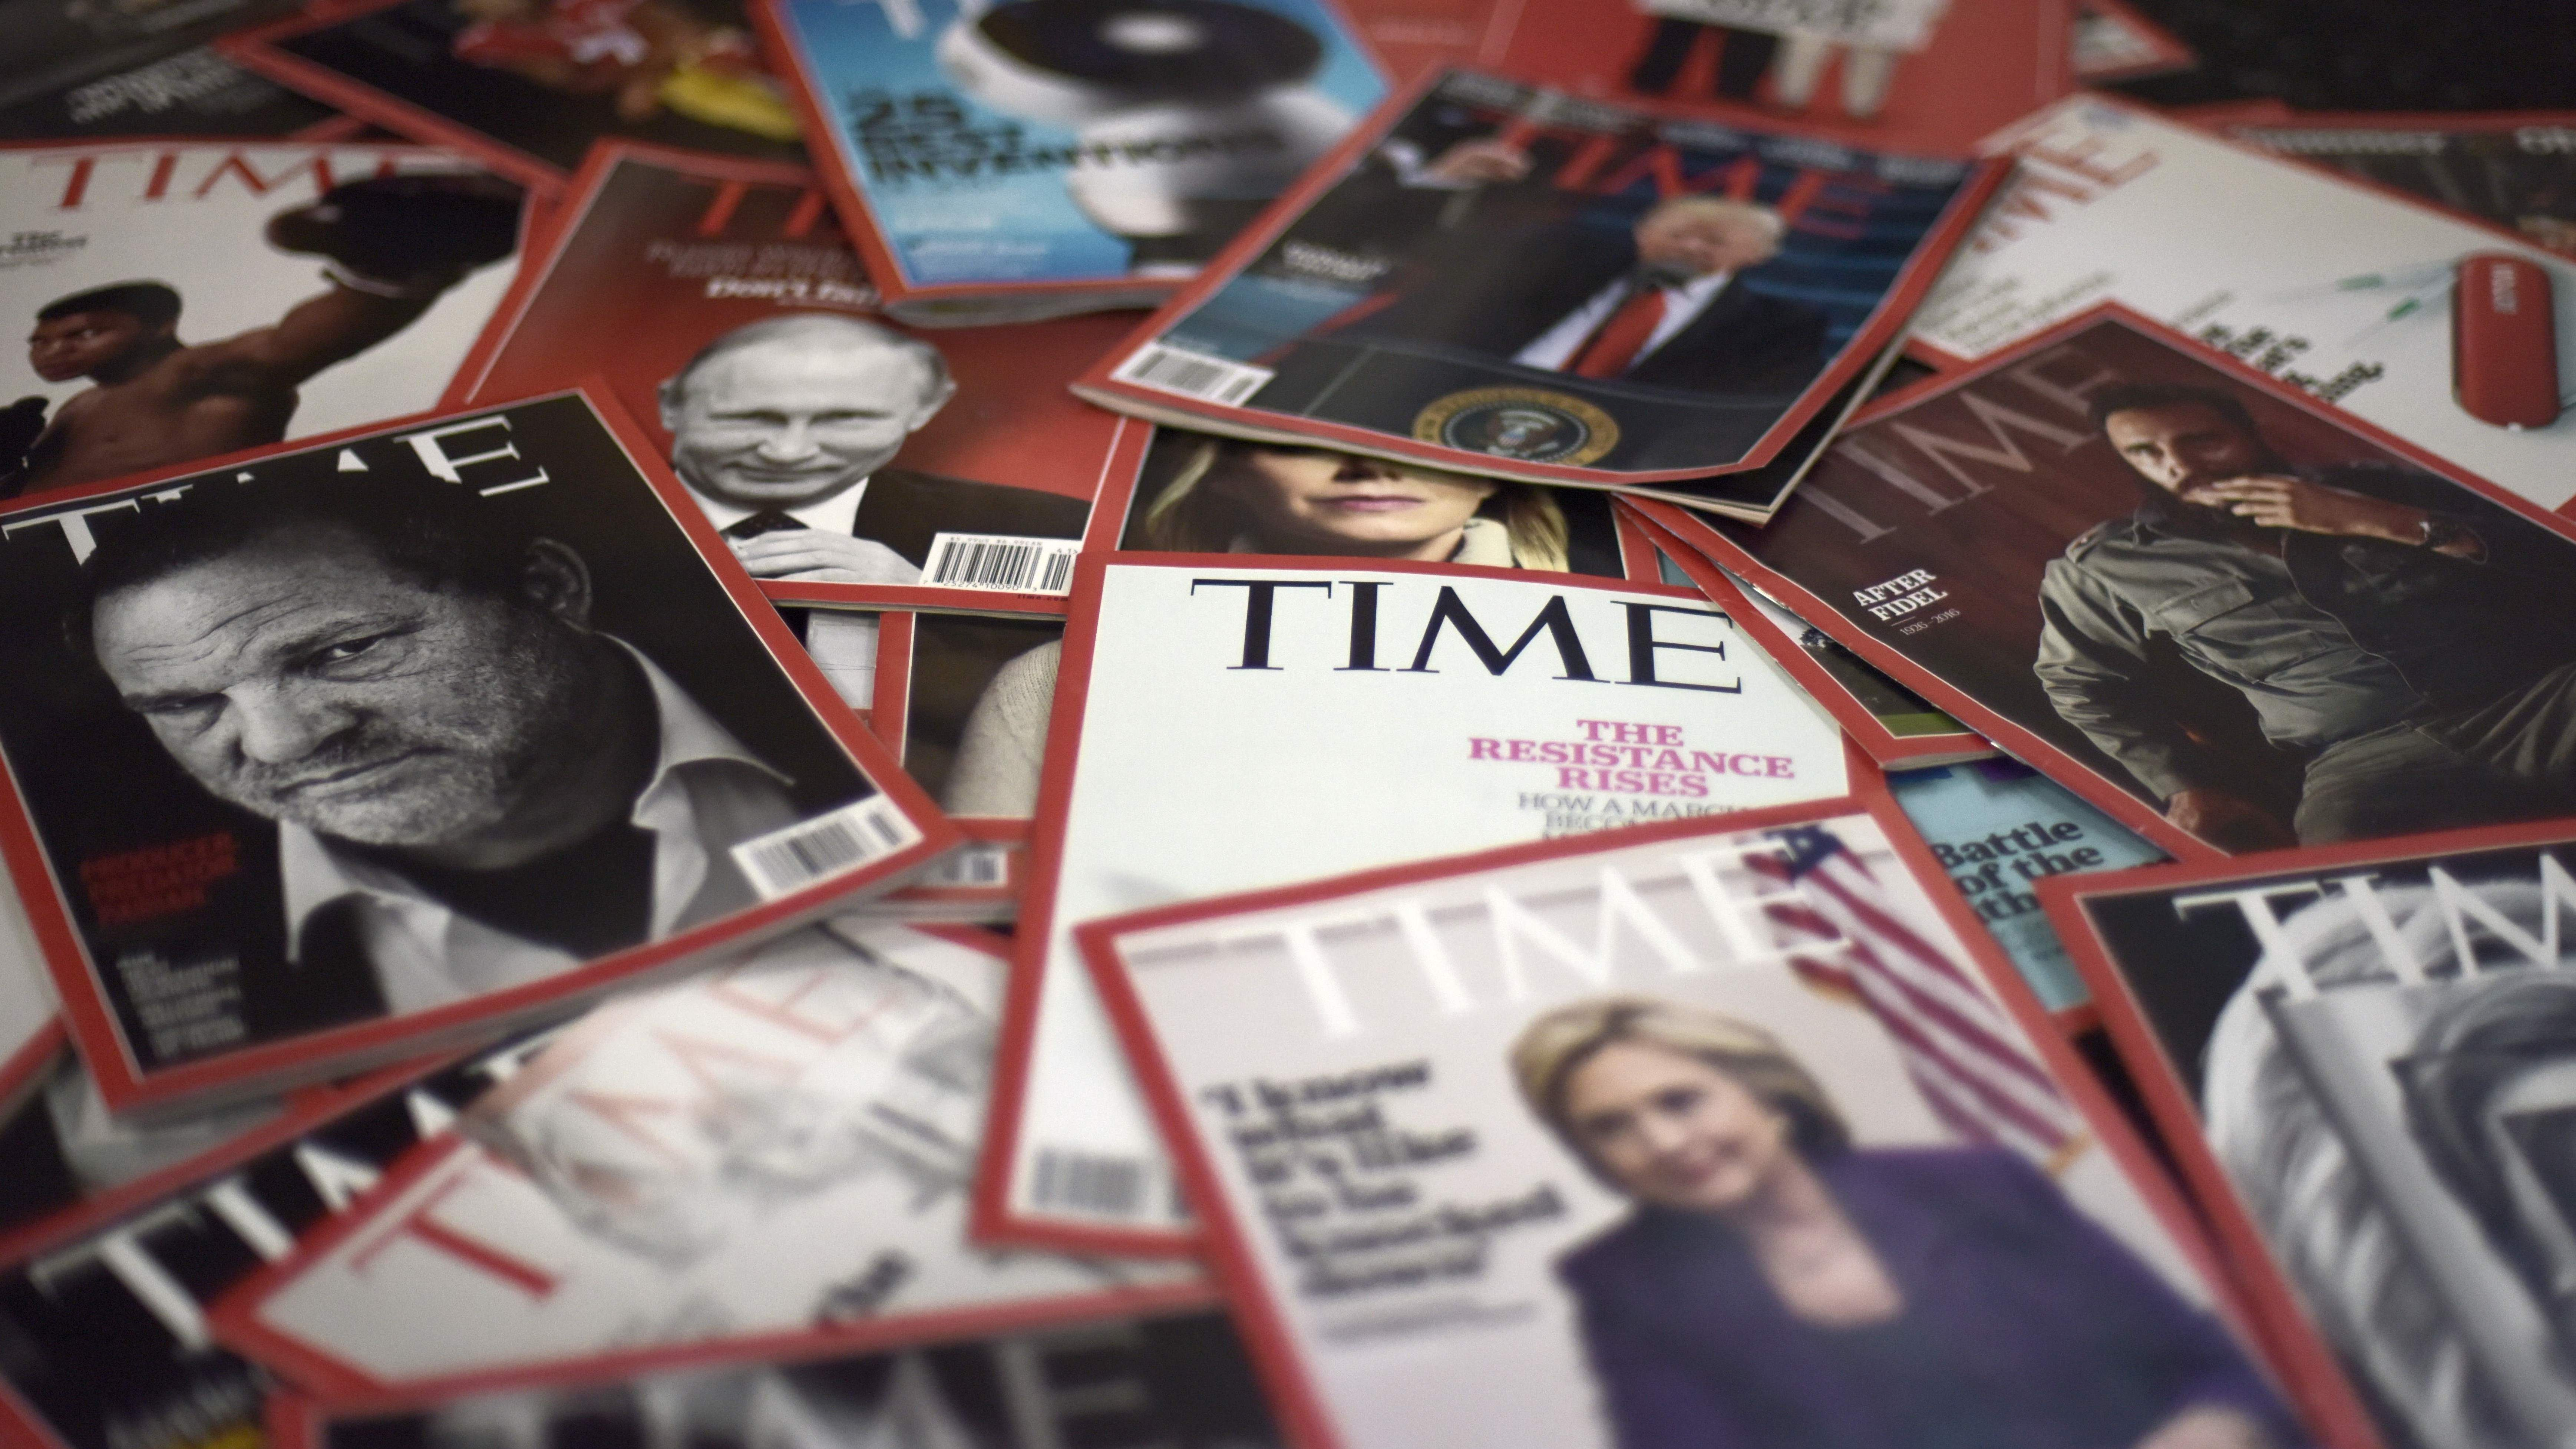 Time magazine to be sold to Salesforce billionaire Marc Benioff